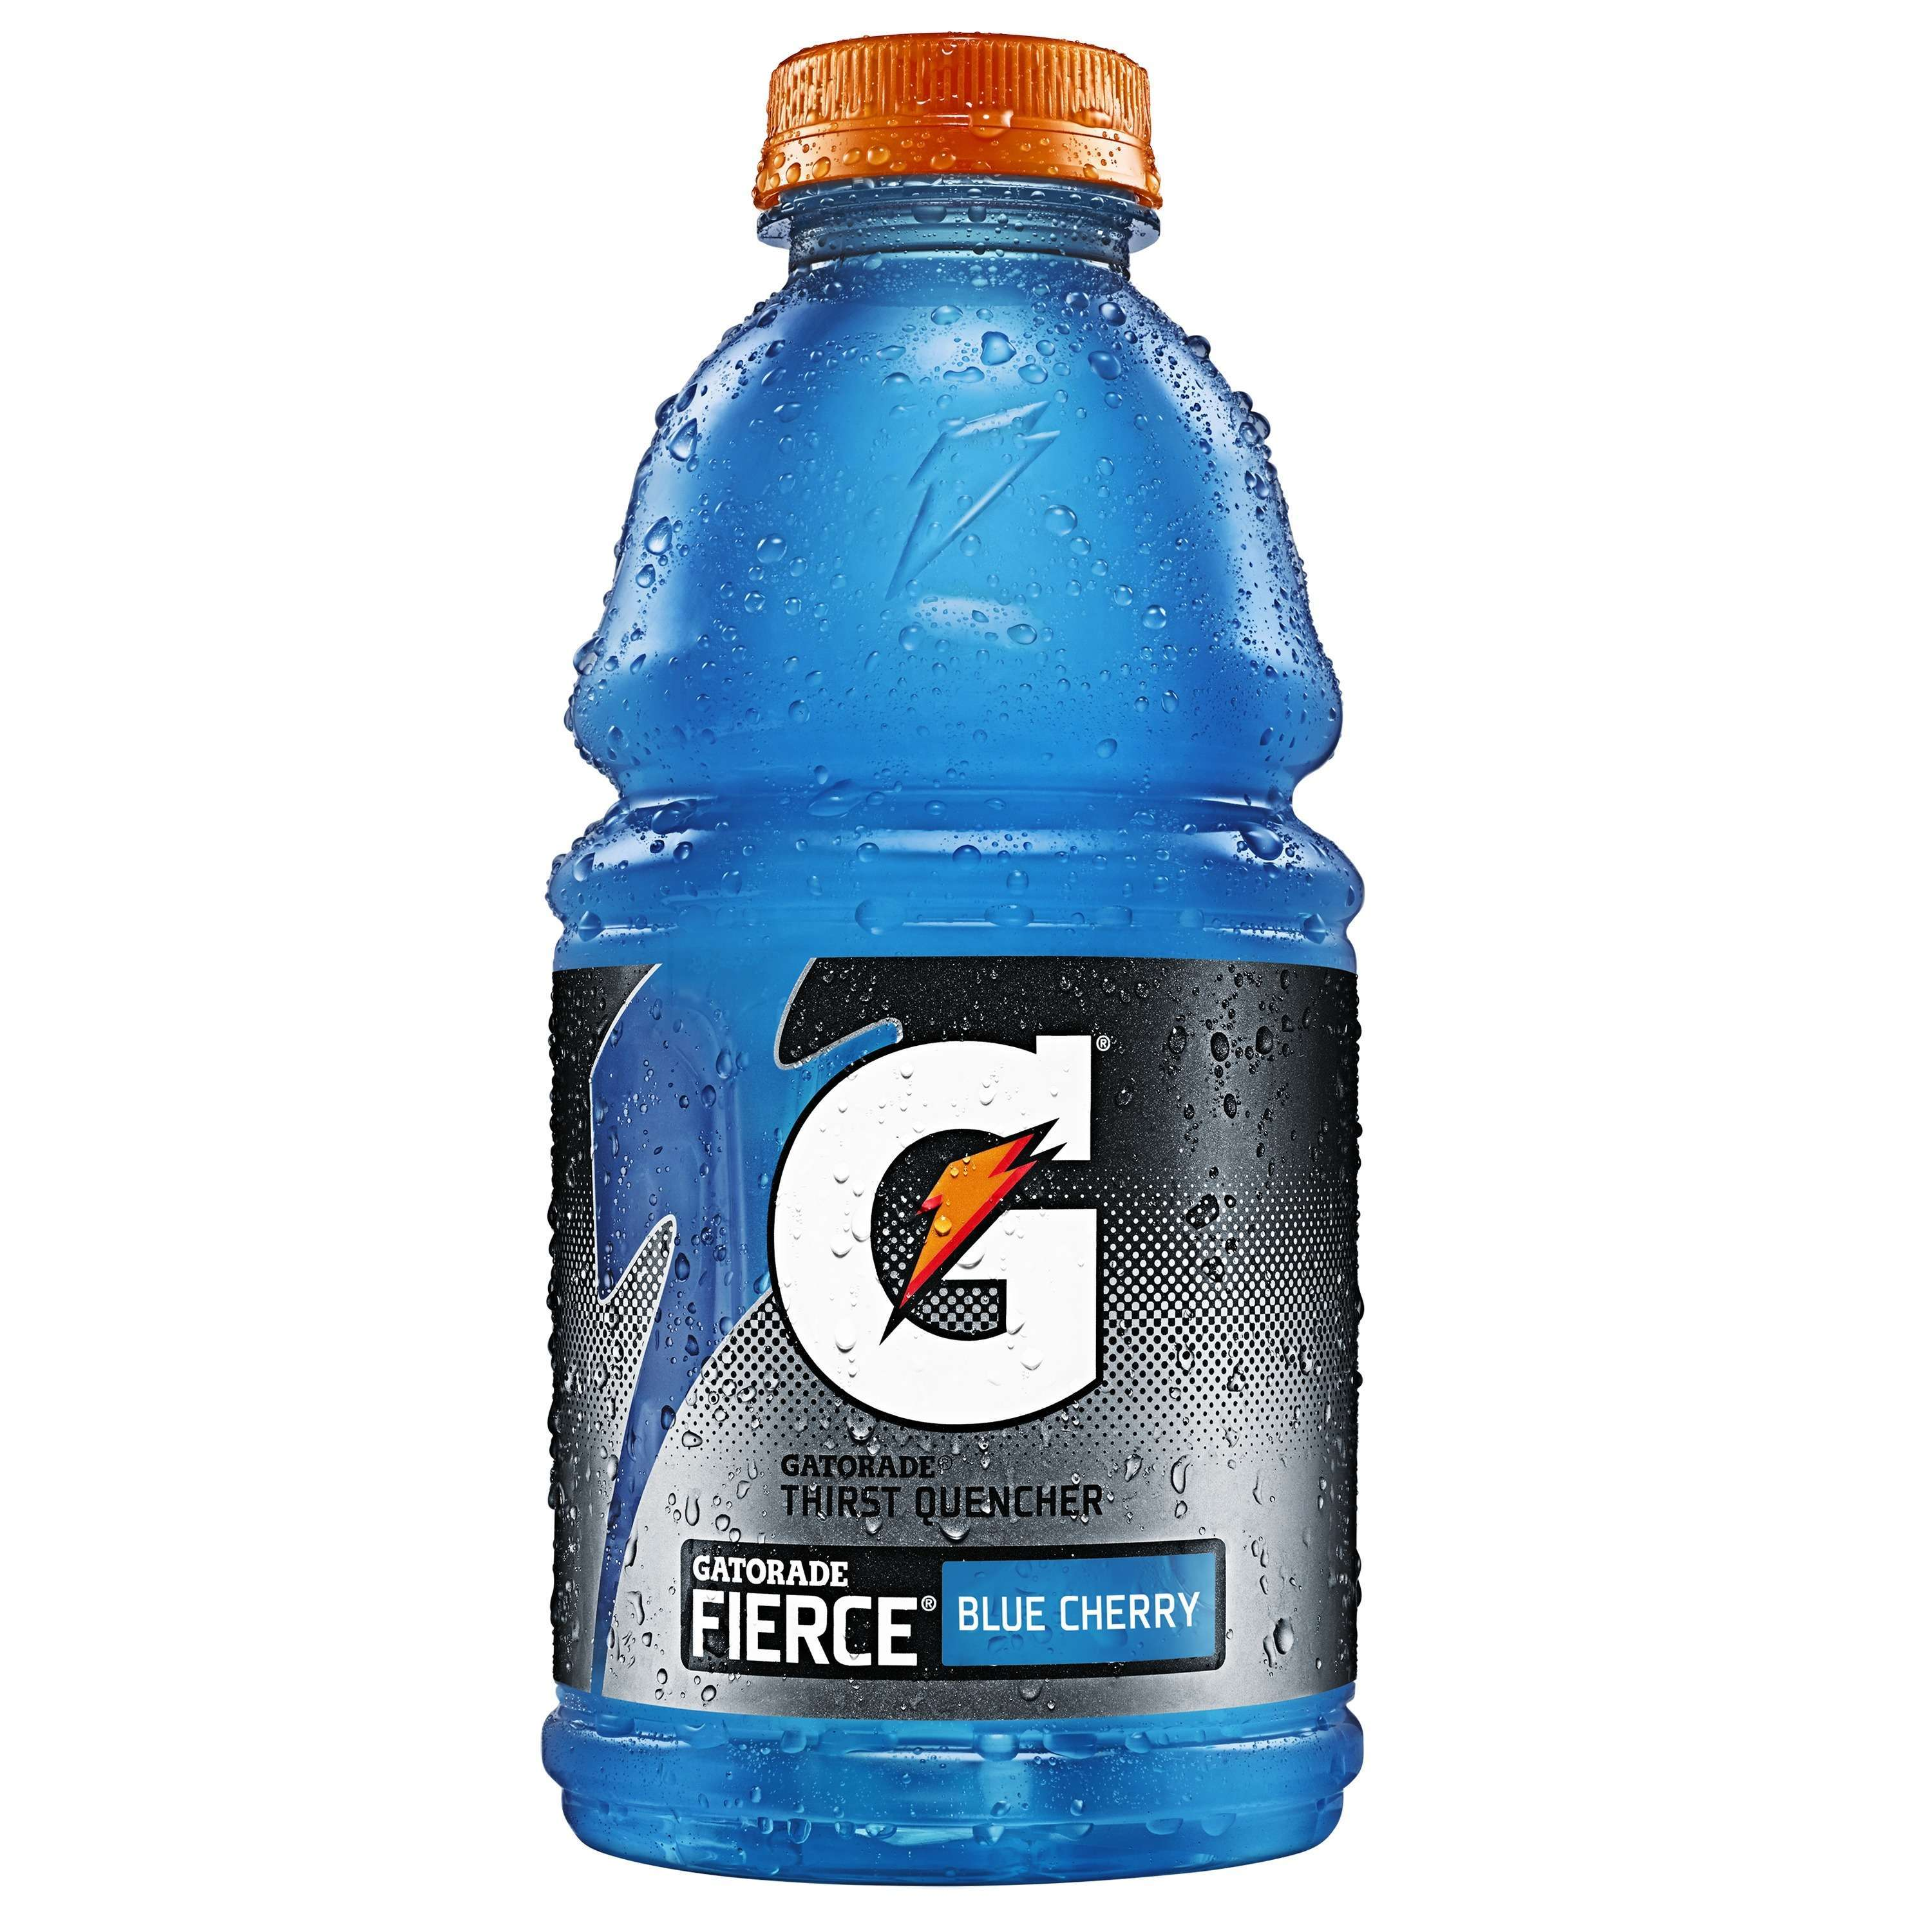 Gatorade Thirst Quencher Fierce Blue Cherry Drink, 32 Fl. Oz.